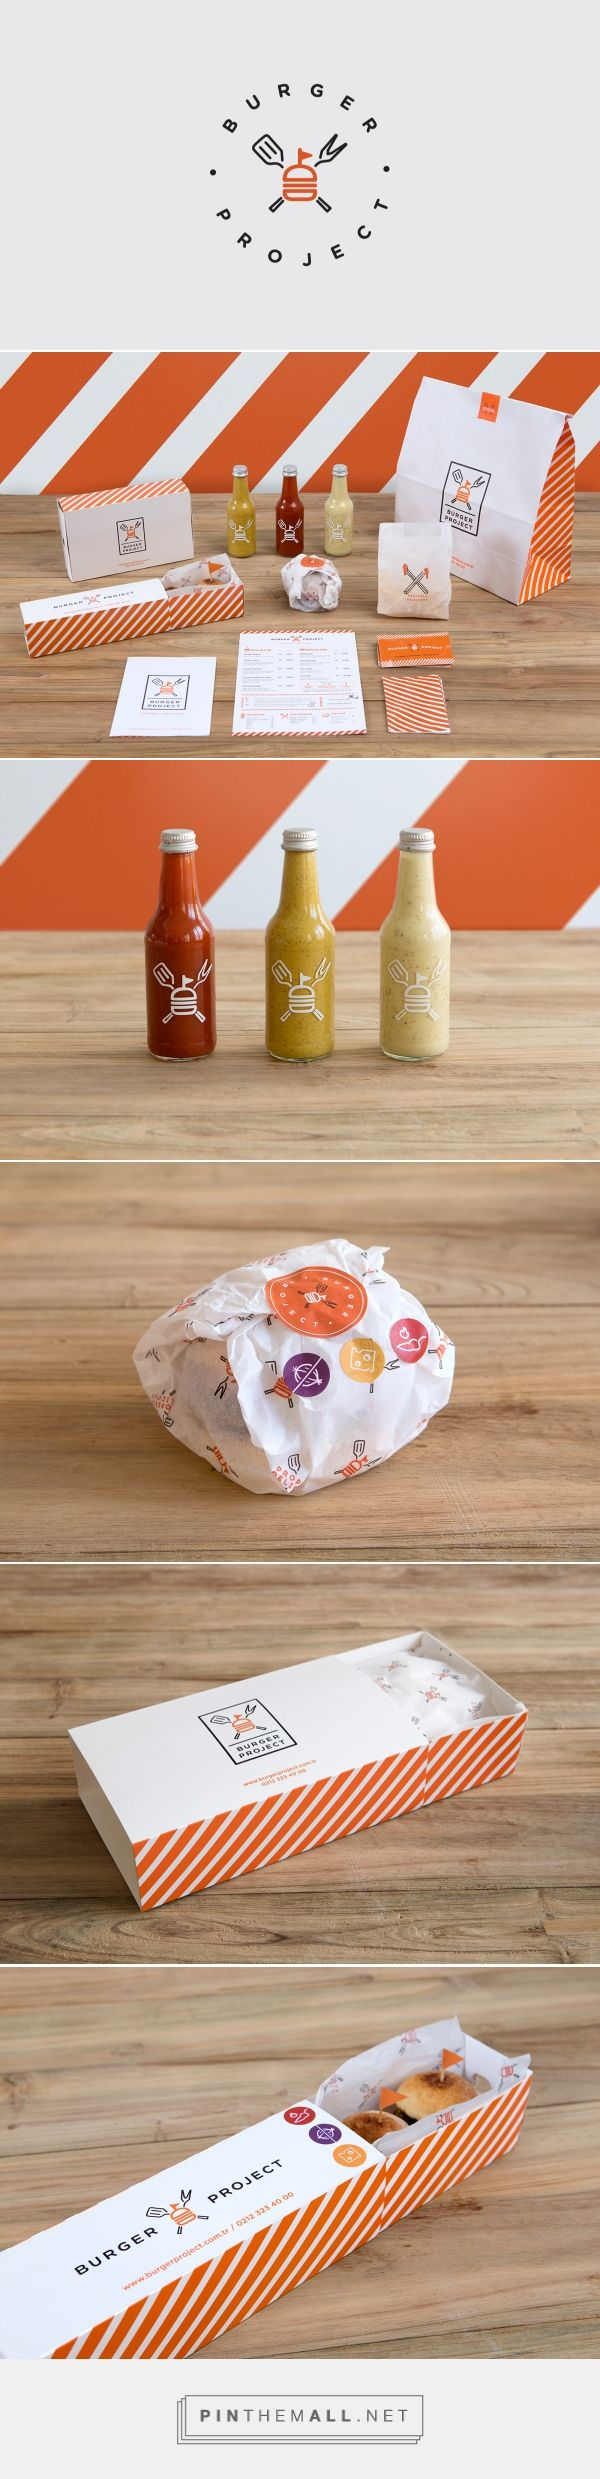 Burger Project by Monroe Creative Studio                                                                                                                                                     More